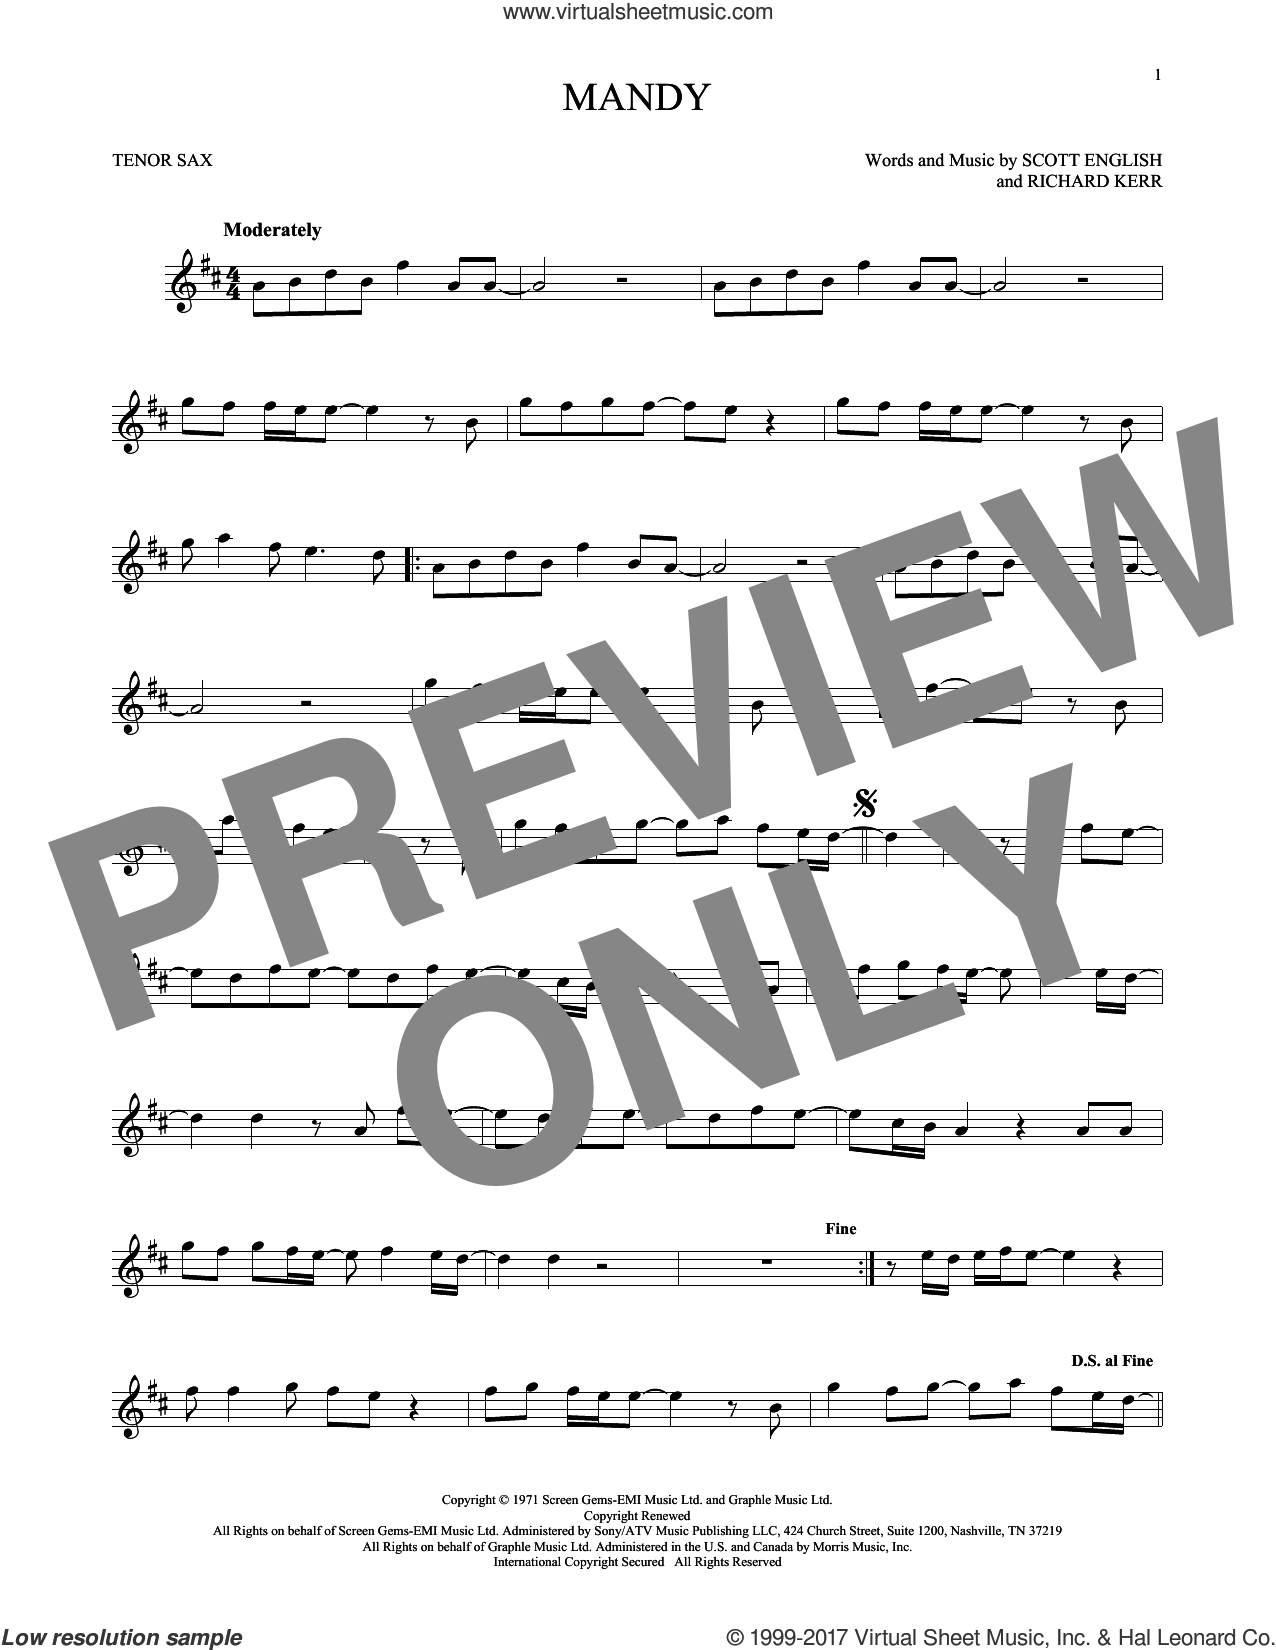 Mandy sheet music for tenor saxophone solo by Barry Manilow, Richard Kerr and Scott English, intermediate skill level